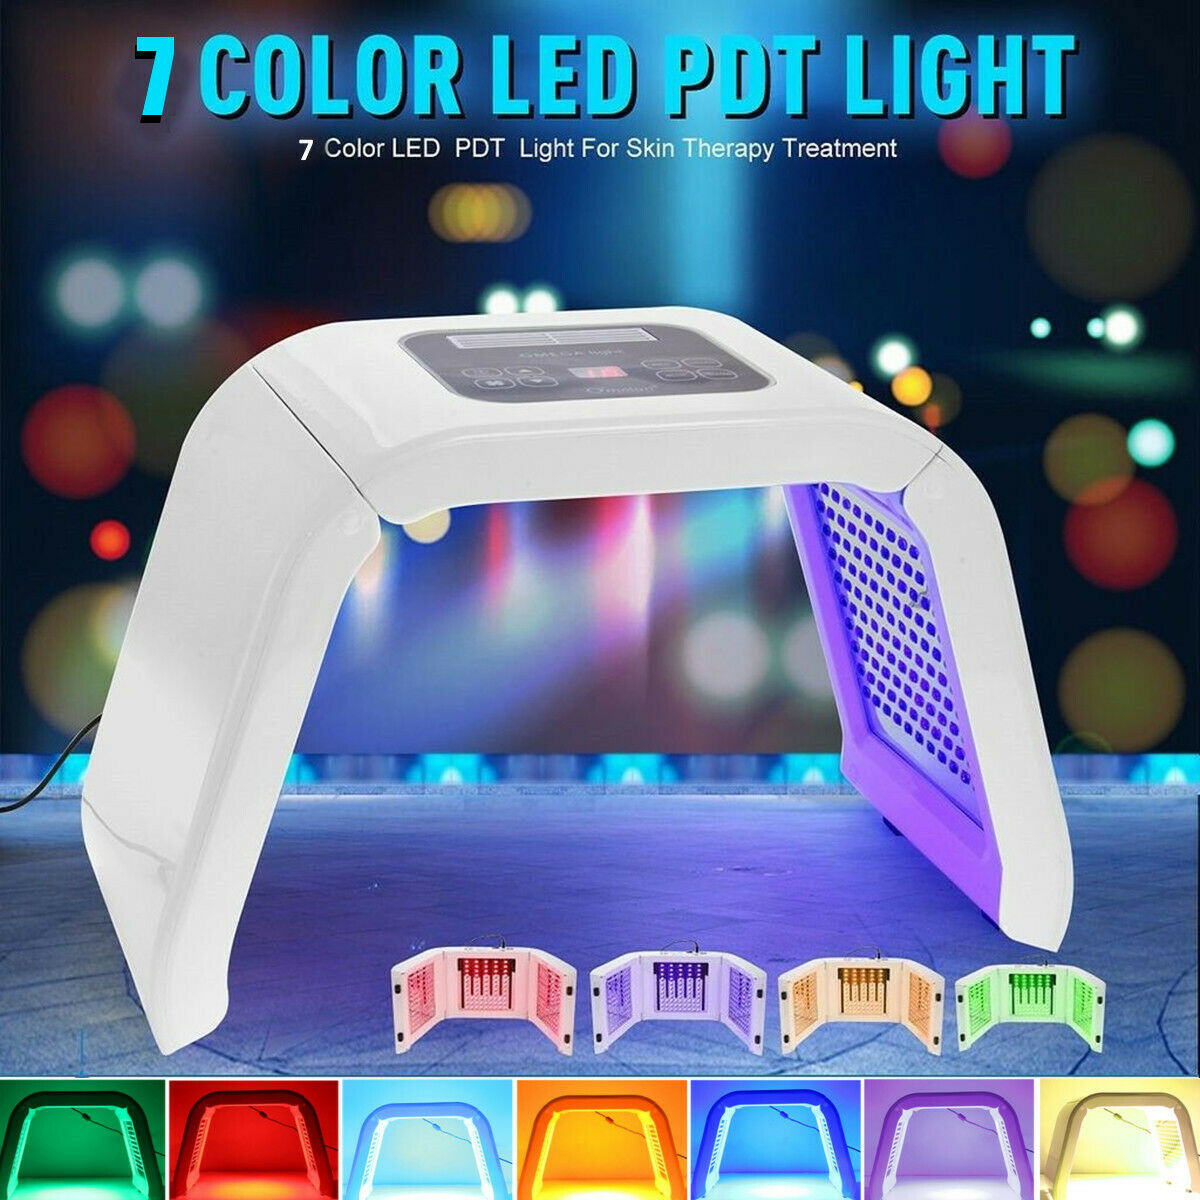 7 Colors LED Light Photodynamic Facial Skin Care Body Relaxation Therapy Device Multifunctional Beauty Instrument Home Use